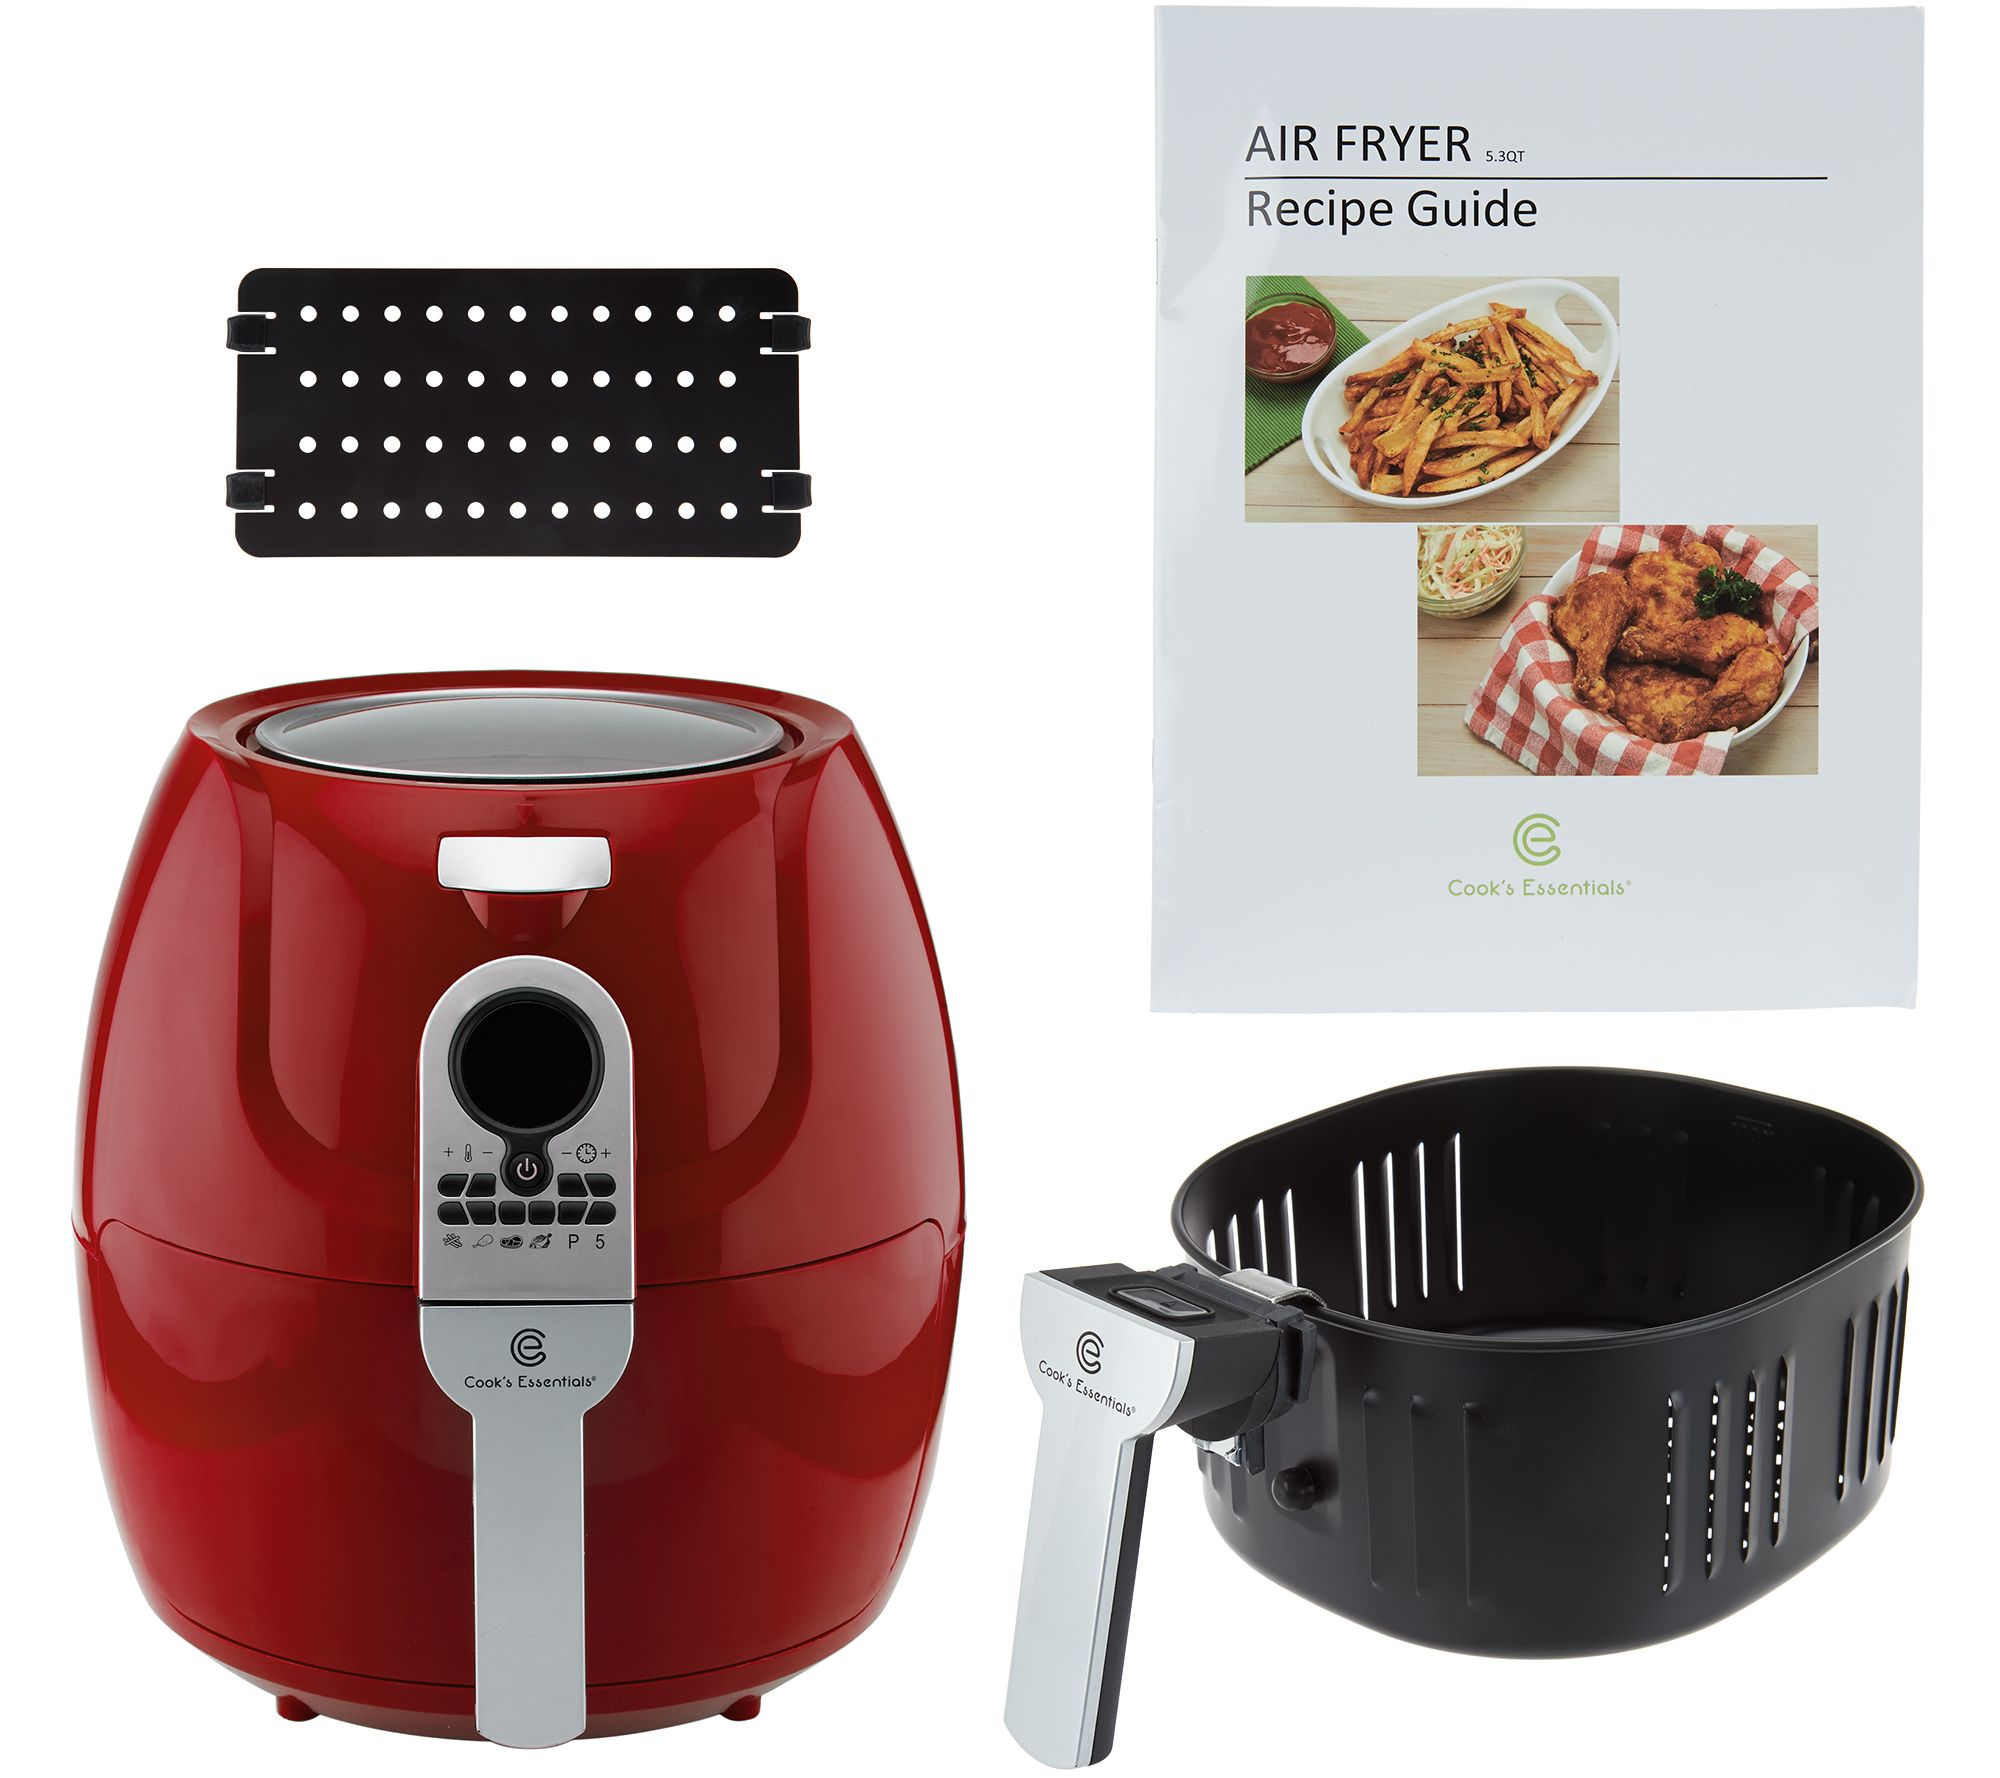 Cooks Brand Kitchen Appliances Cooksessentials 53qt Digital Air Fryer W 6 Presets Divider